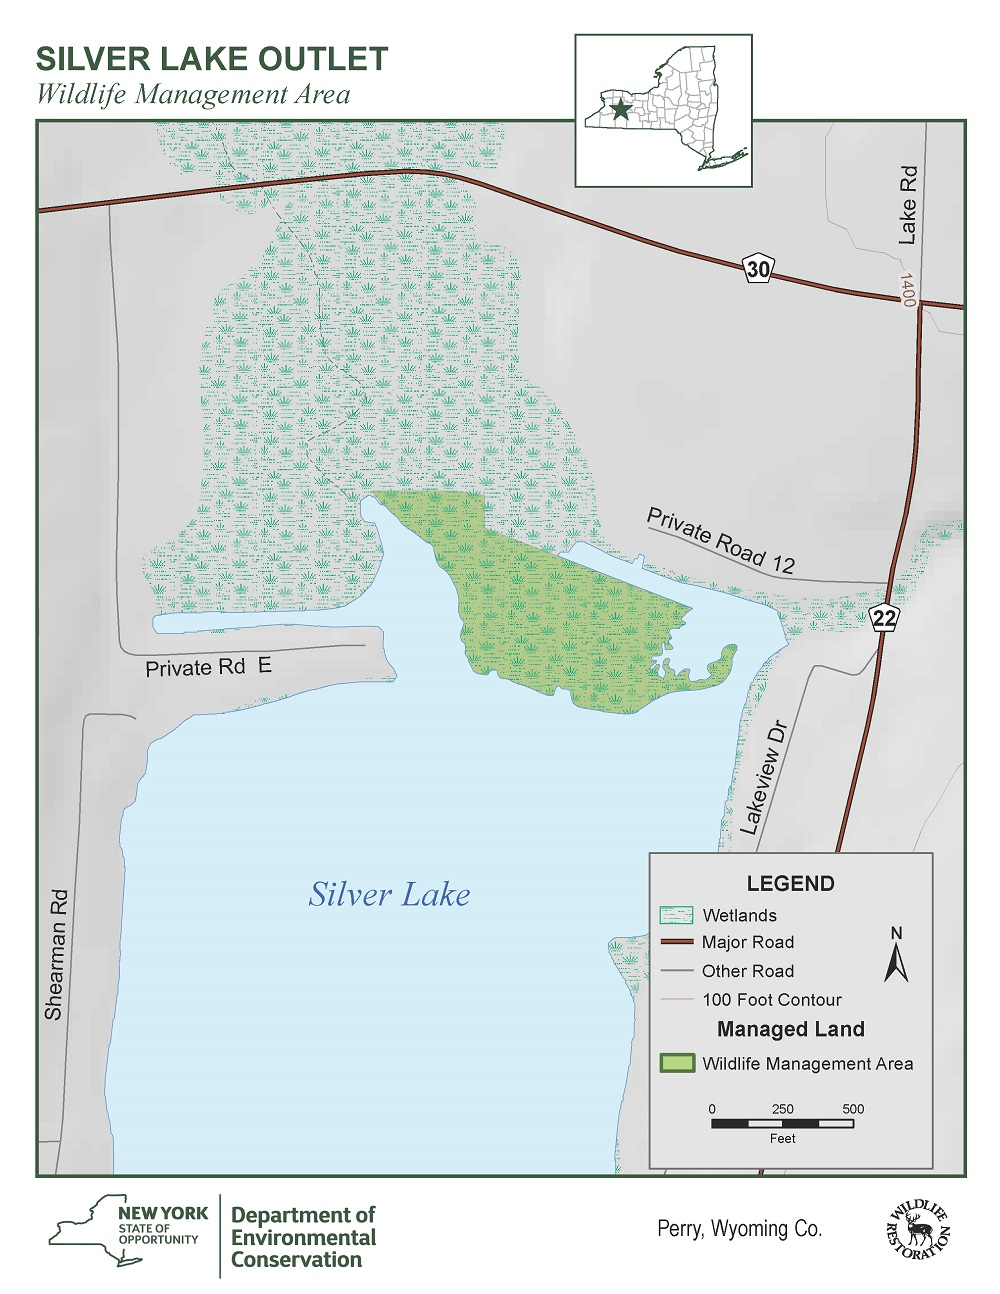 Map of Silver Lake Outlet WMA